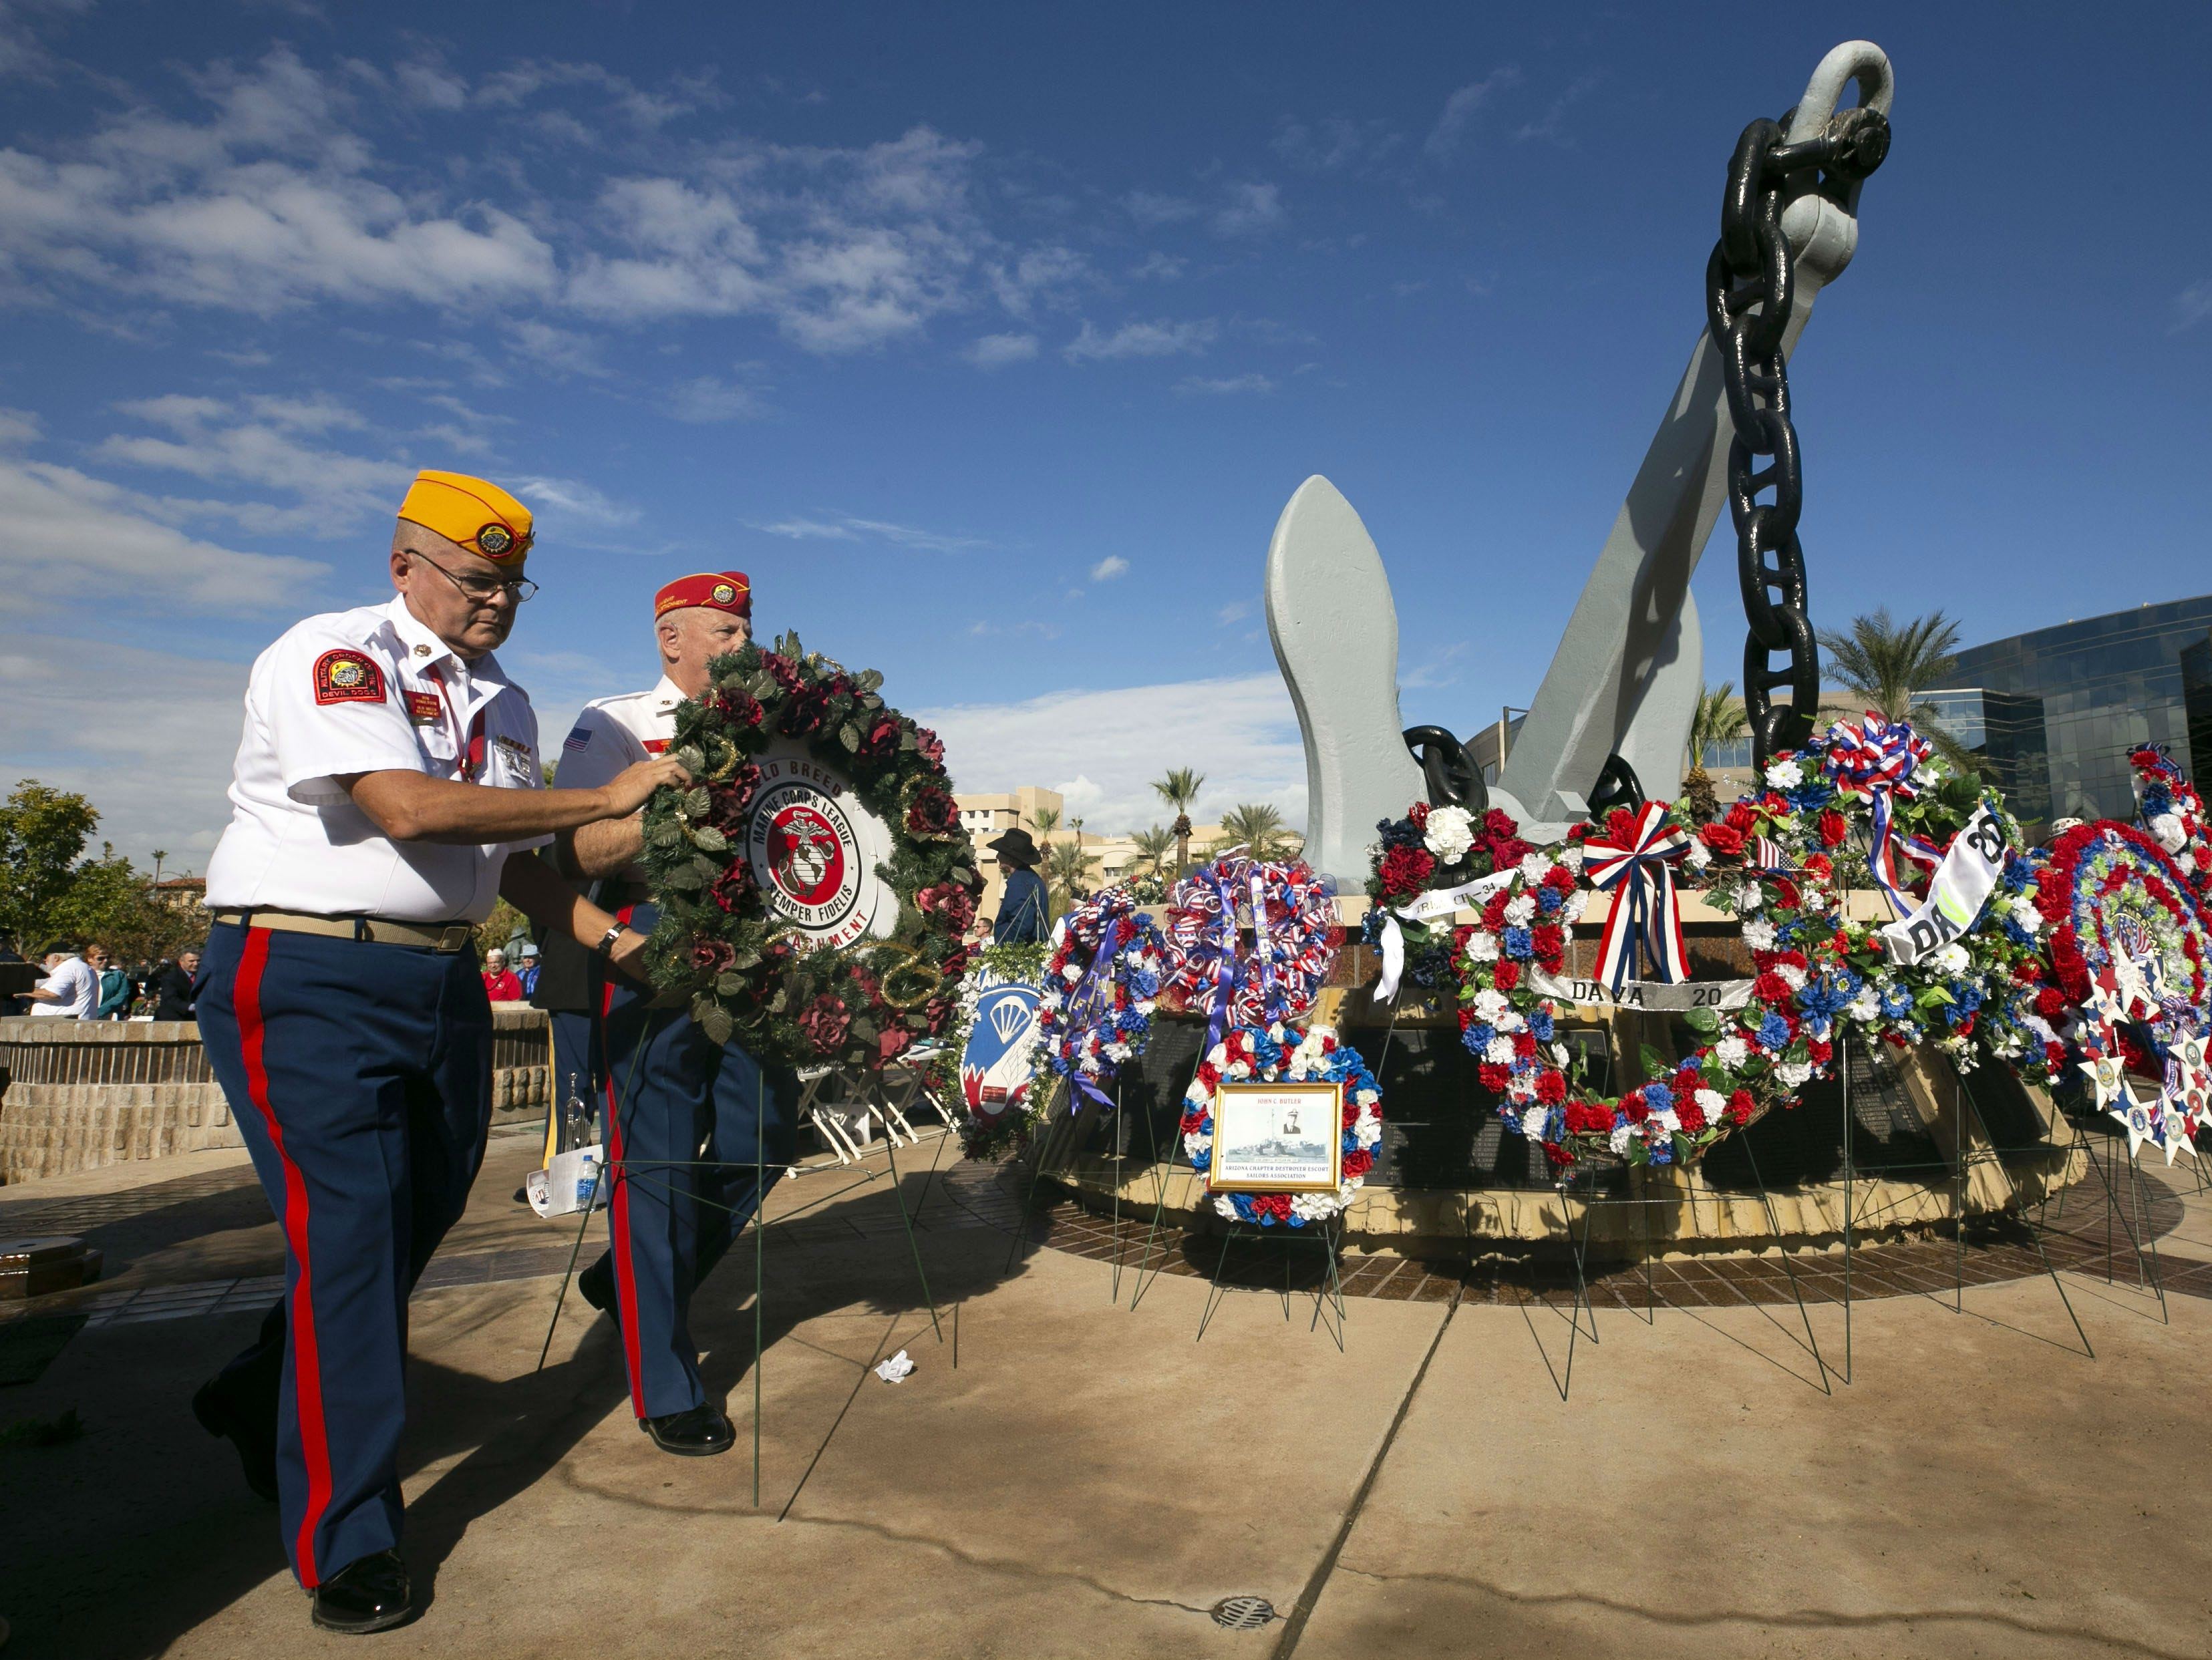 Veterans place memorial wreaths during a Pearl Harbor Remembrance Day event at Wesley Bolin Plaza in Phoenix on Dec. 7, 2018, the 77th anniversary of the attack on Pearl Harbor.